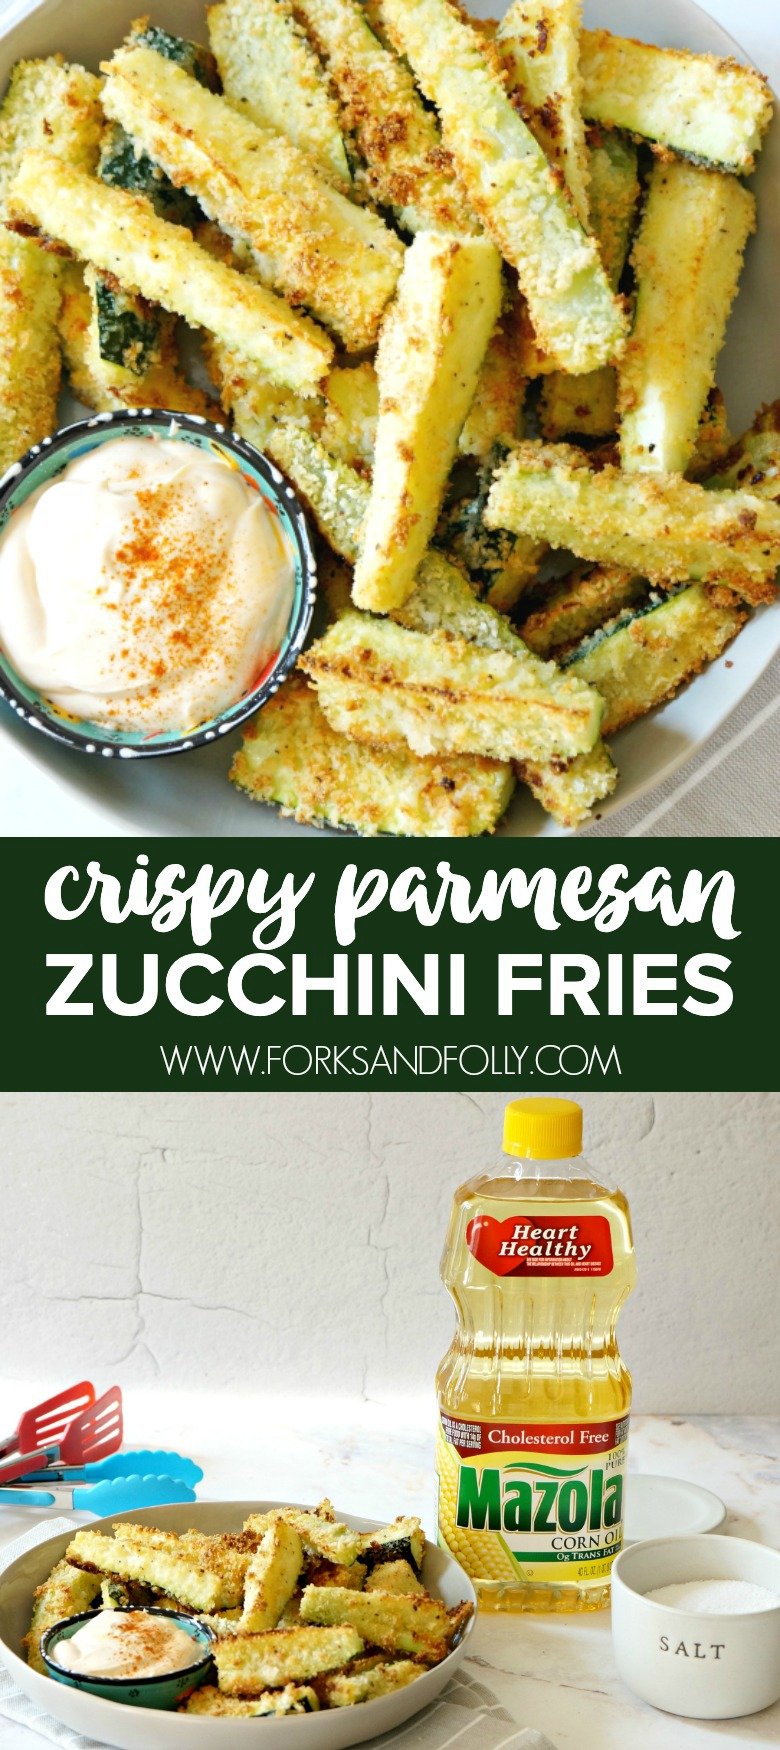 Celebrate Heart Health Month this February by serving these these baked Crispy Parmesan Zucchini Fries as an appetizer or veggie side dish your whole family will love!